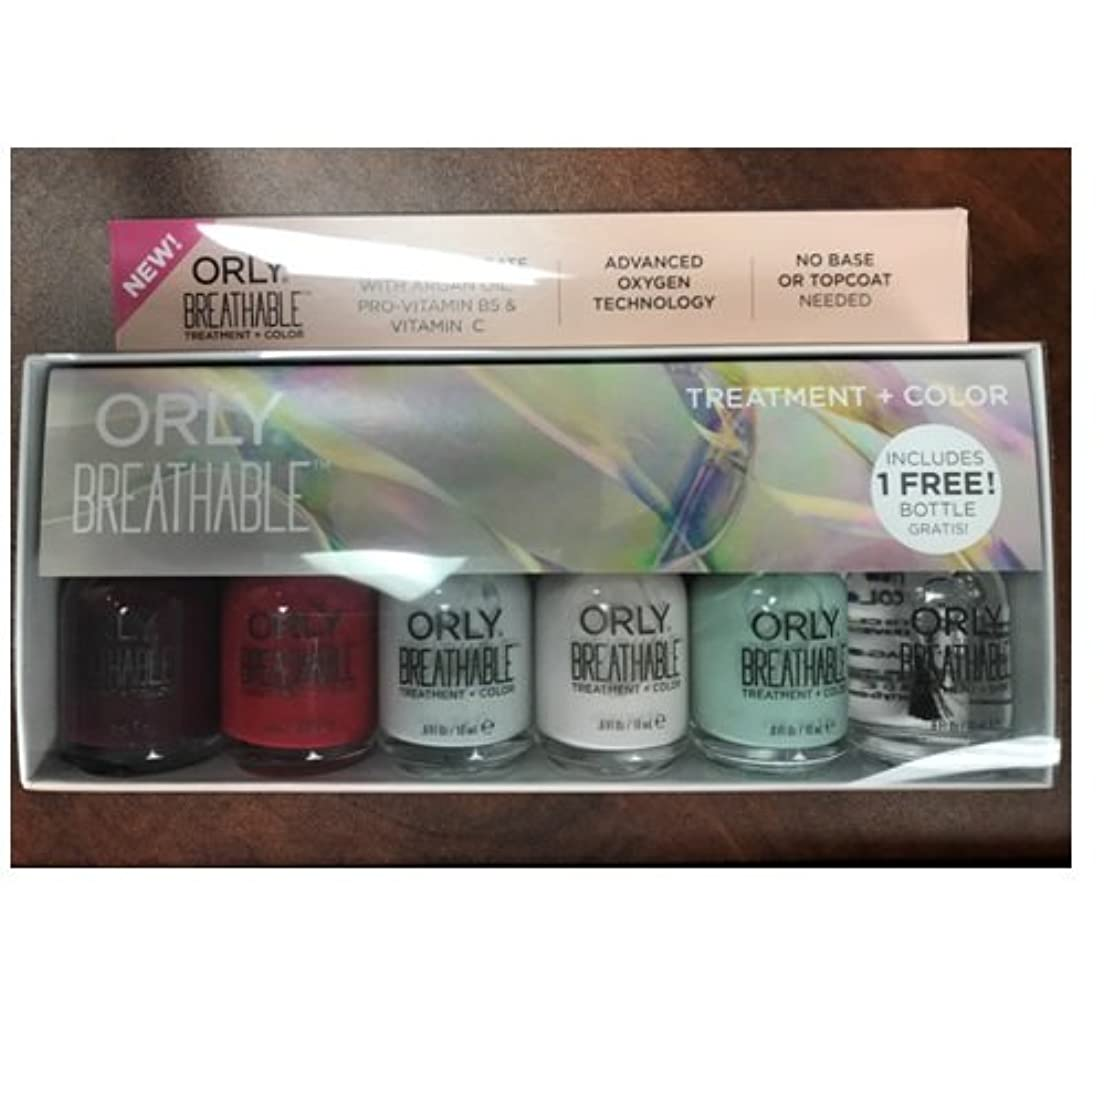 召喚する値抜け目がないOrly Breathable Nail Lacquer - Treatment + Color - 6 Piece Kit - 18ml / 0.6oz Each